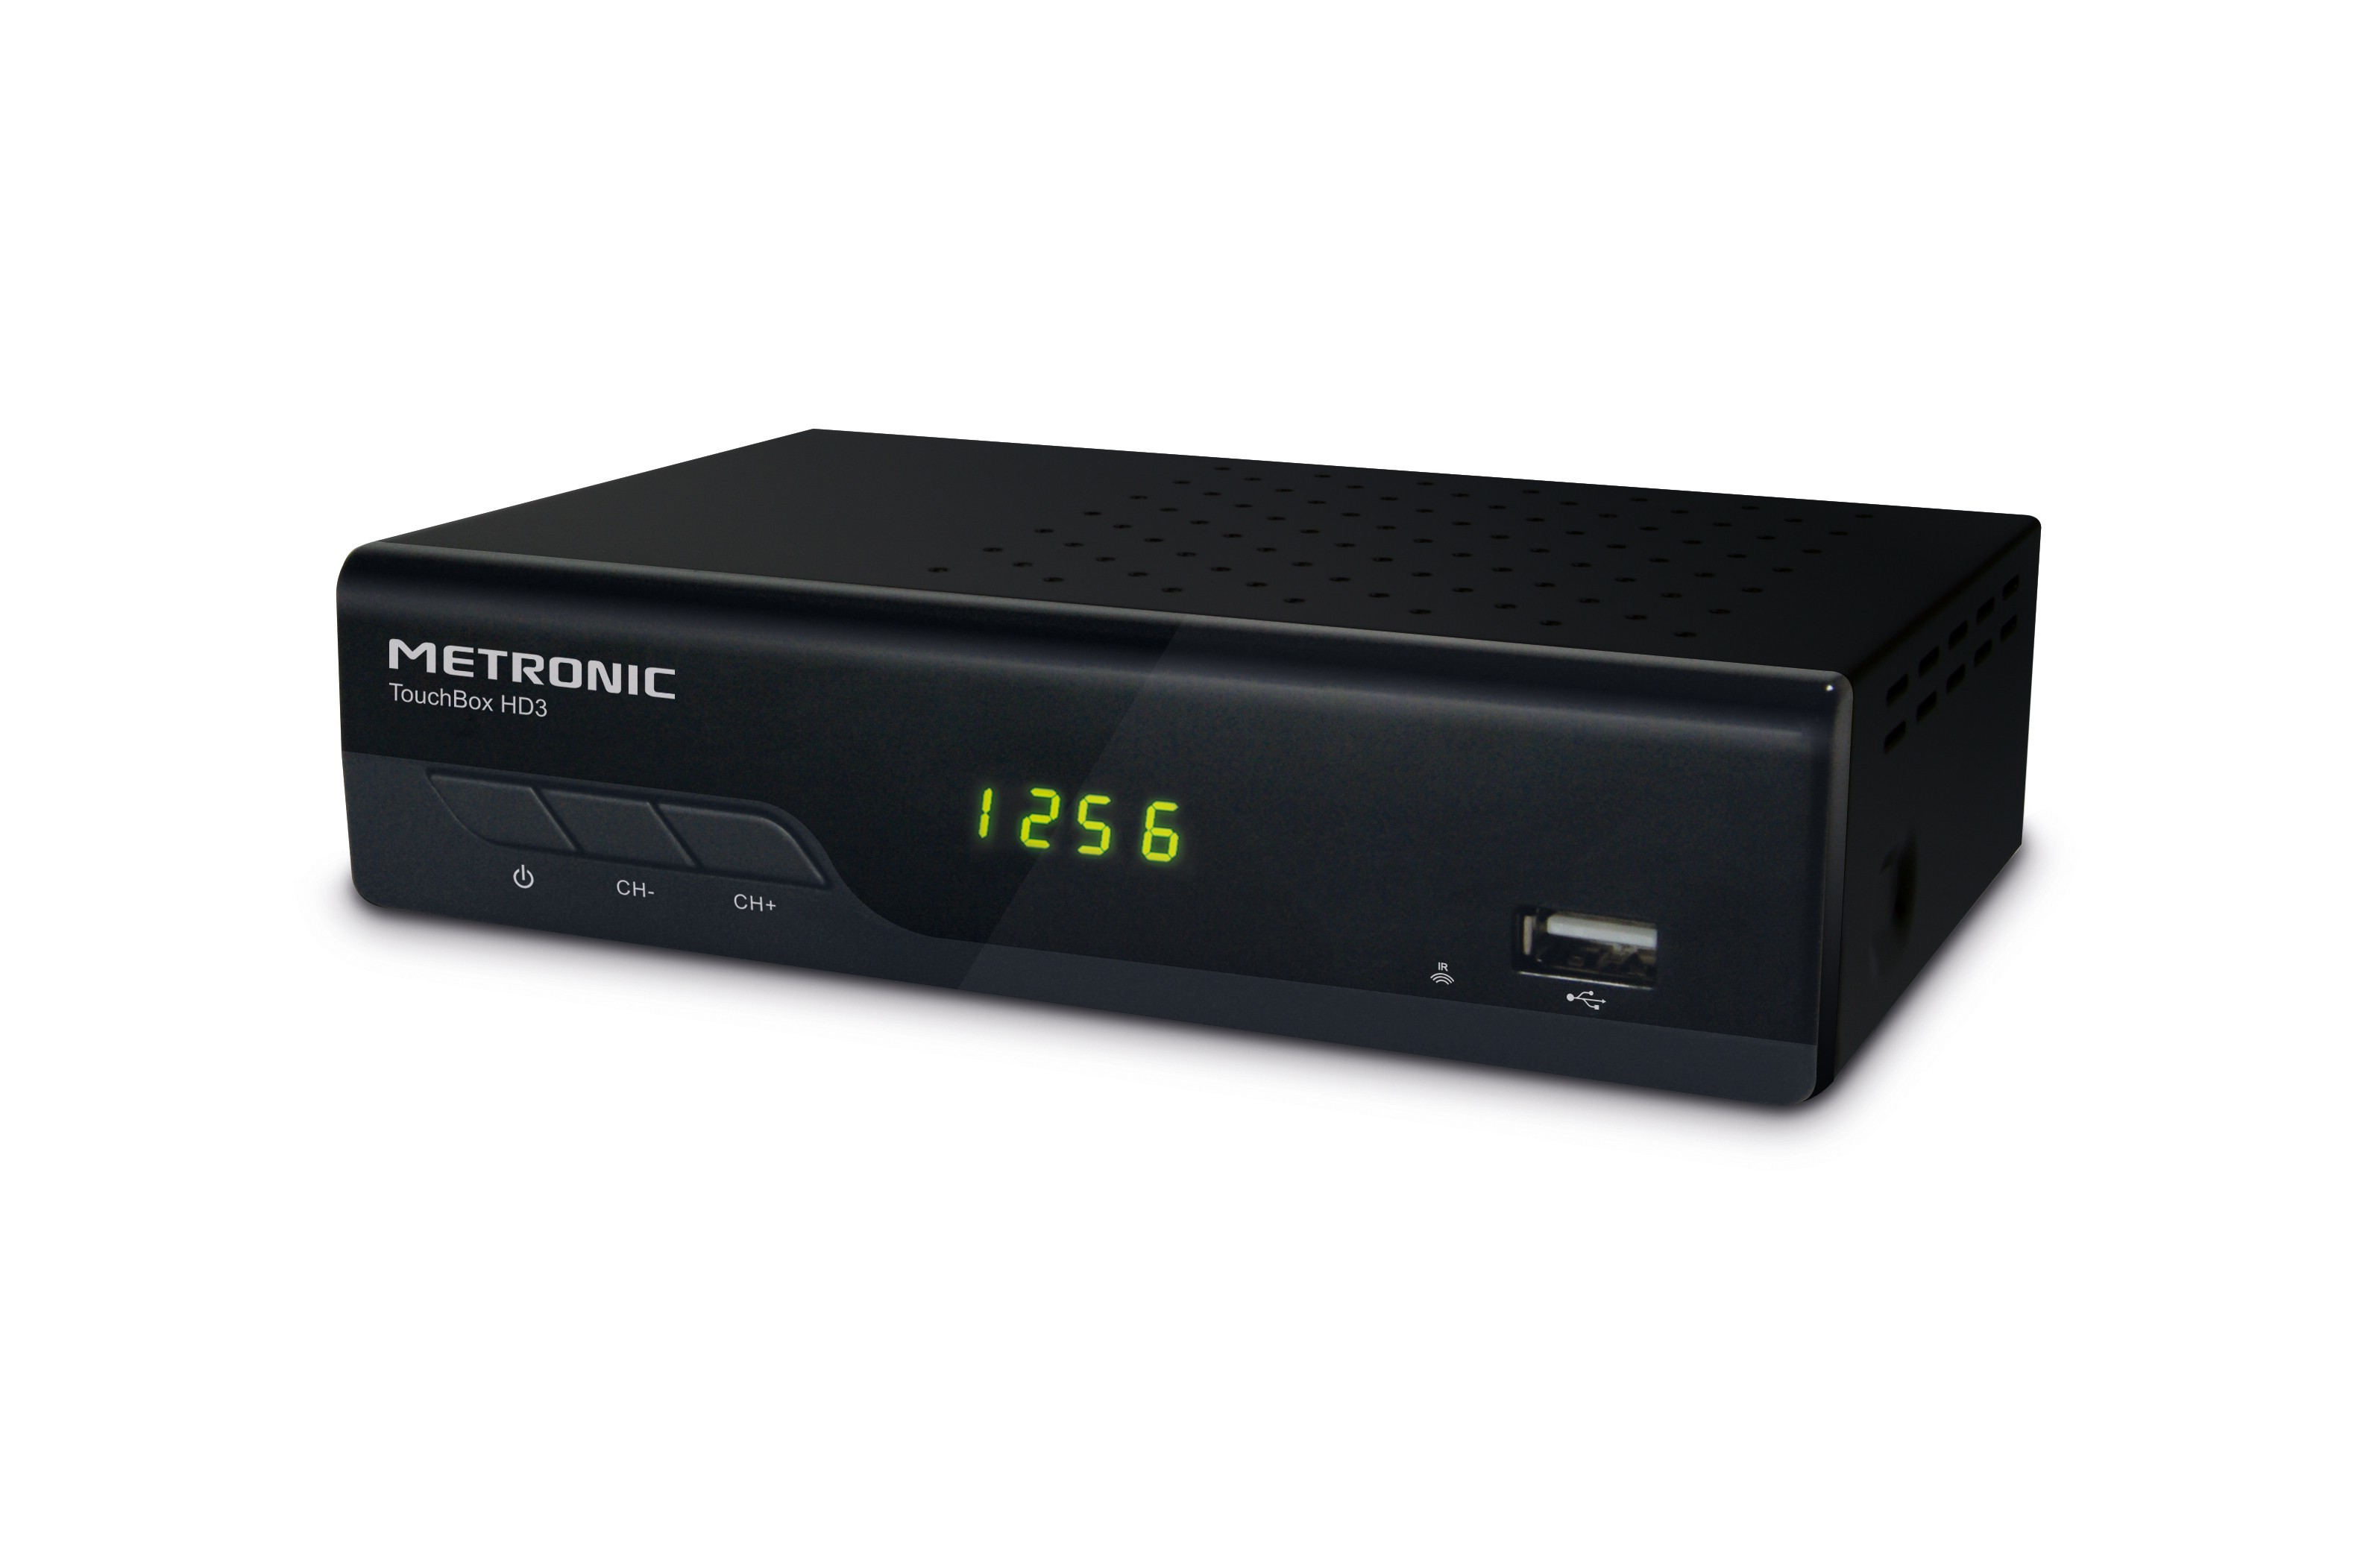 METRONIC Décodeur satellite Touchbox HD3